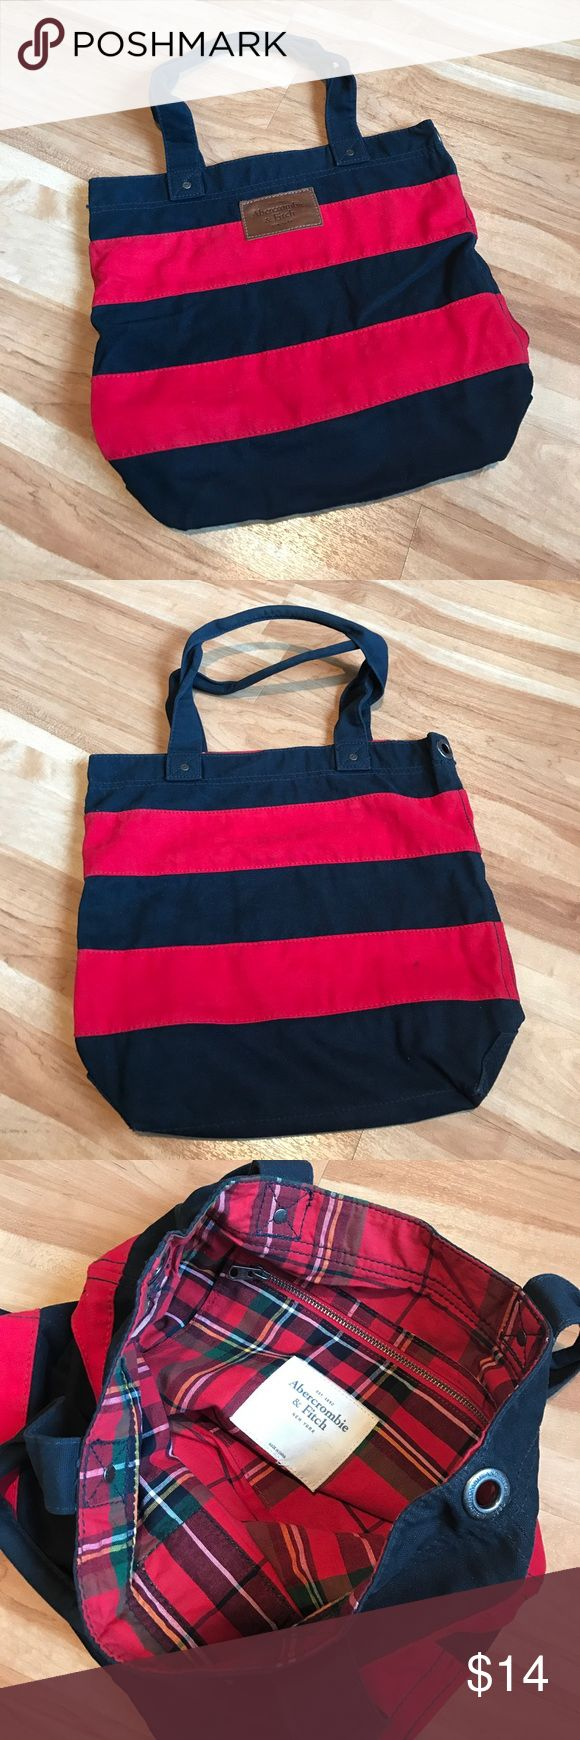 Abercrombie & Fitch Tote Gently used red and blue tote from Abercrombie & Fitch. Only stain is on the back you can see in the 2nd picture. Make me an offer! Abercrombie & Fitch Bags Totes